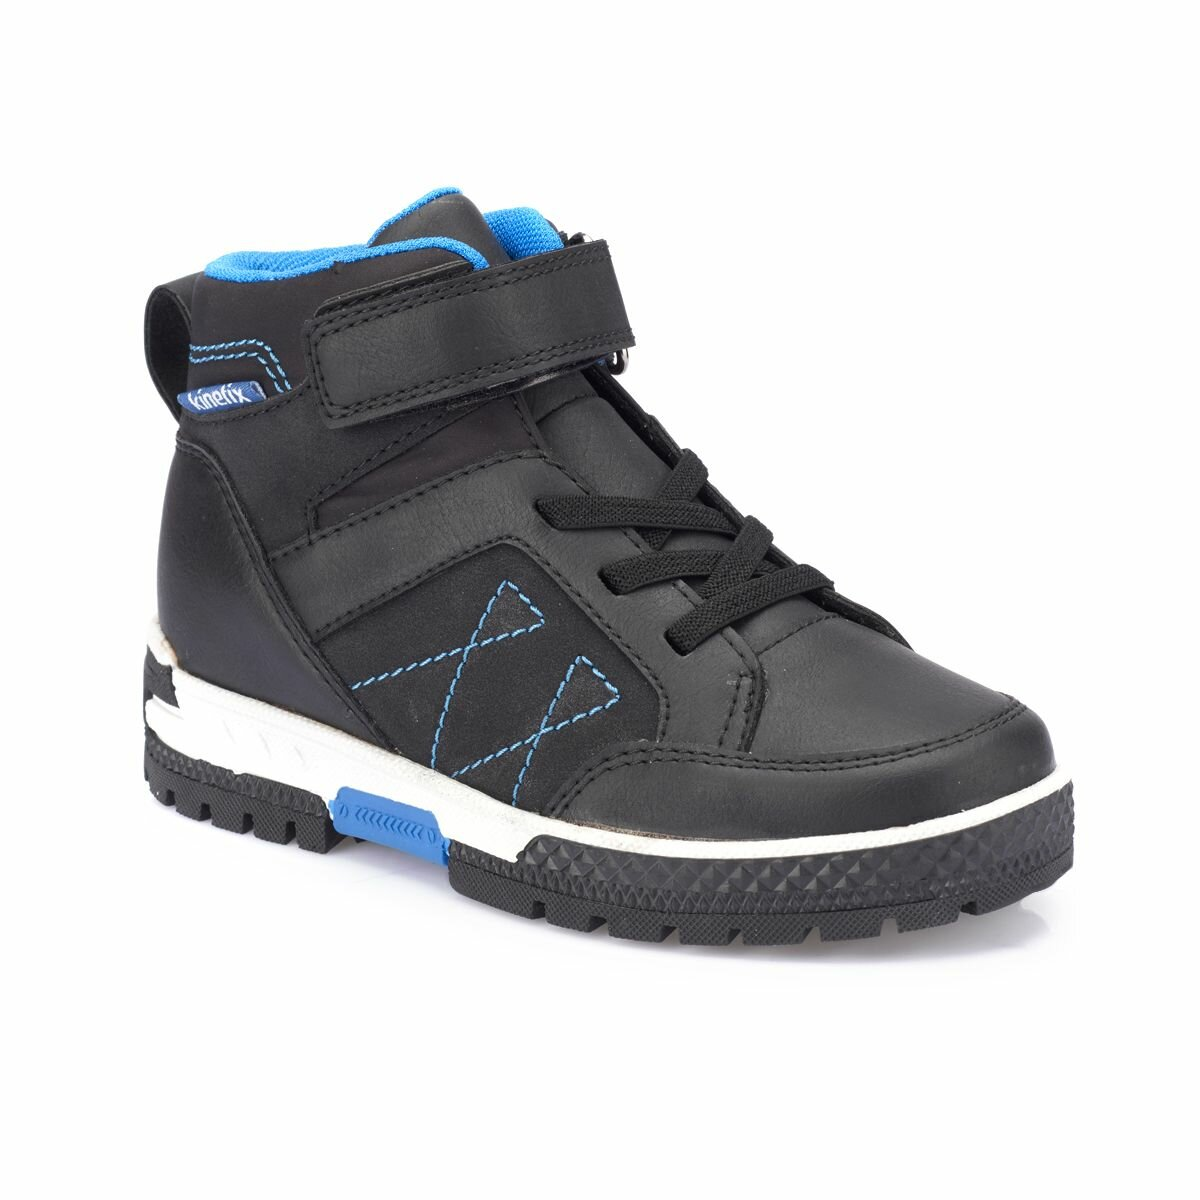 FLO KARBIN Black Male Child Sneaker Shoes KINETIX